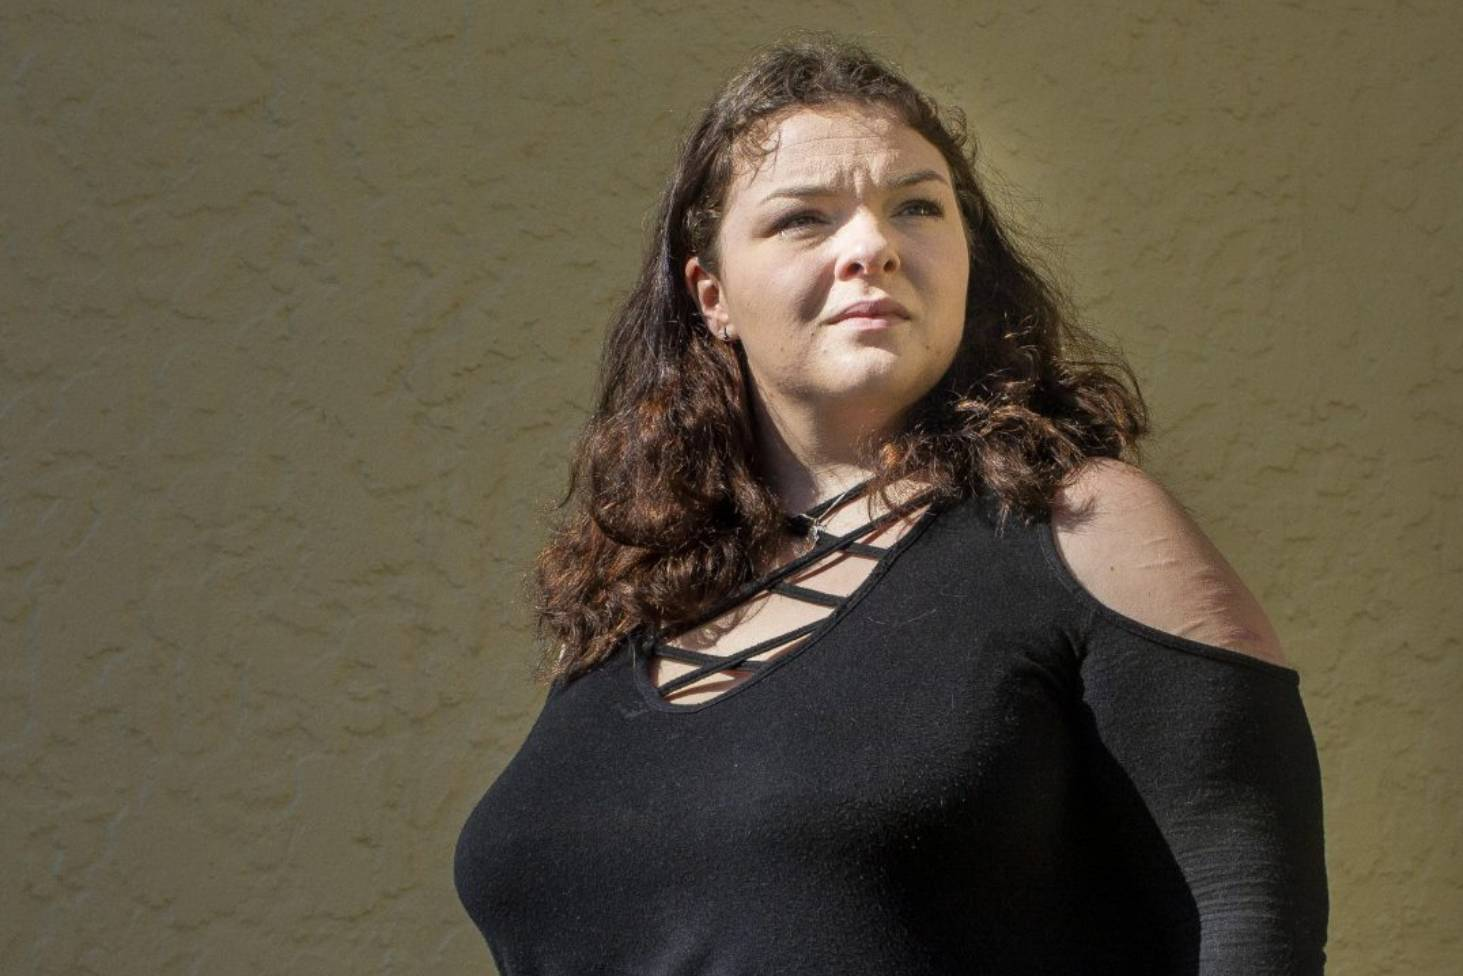 This girl showed how she reduced her breasts by almost 2 kg